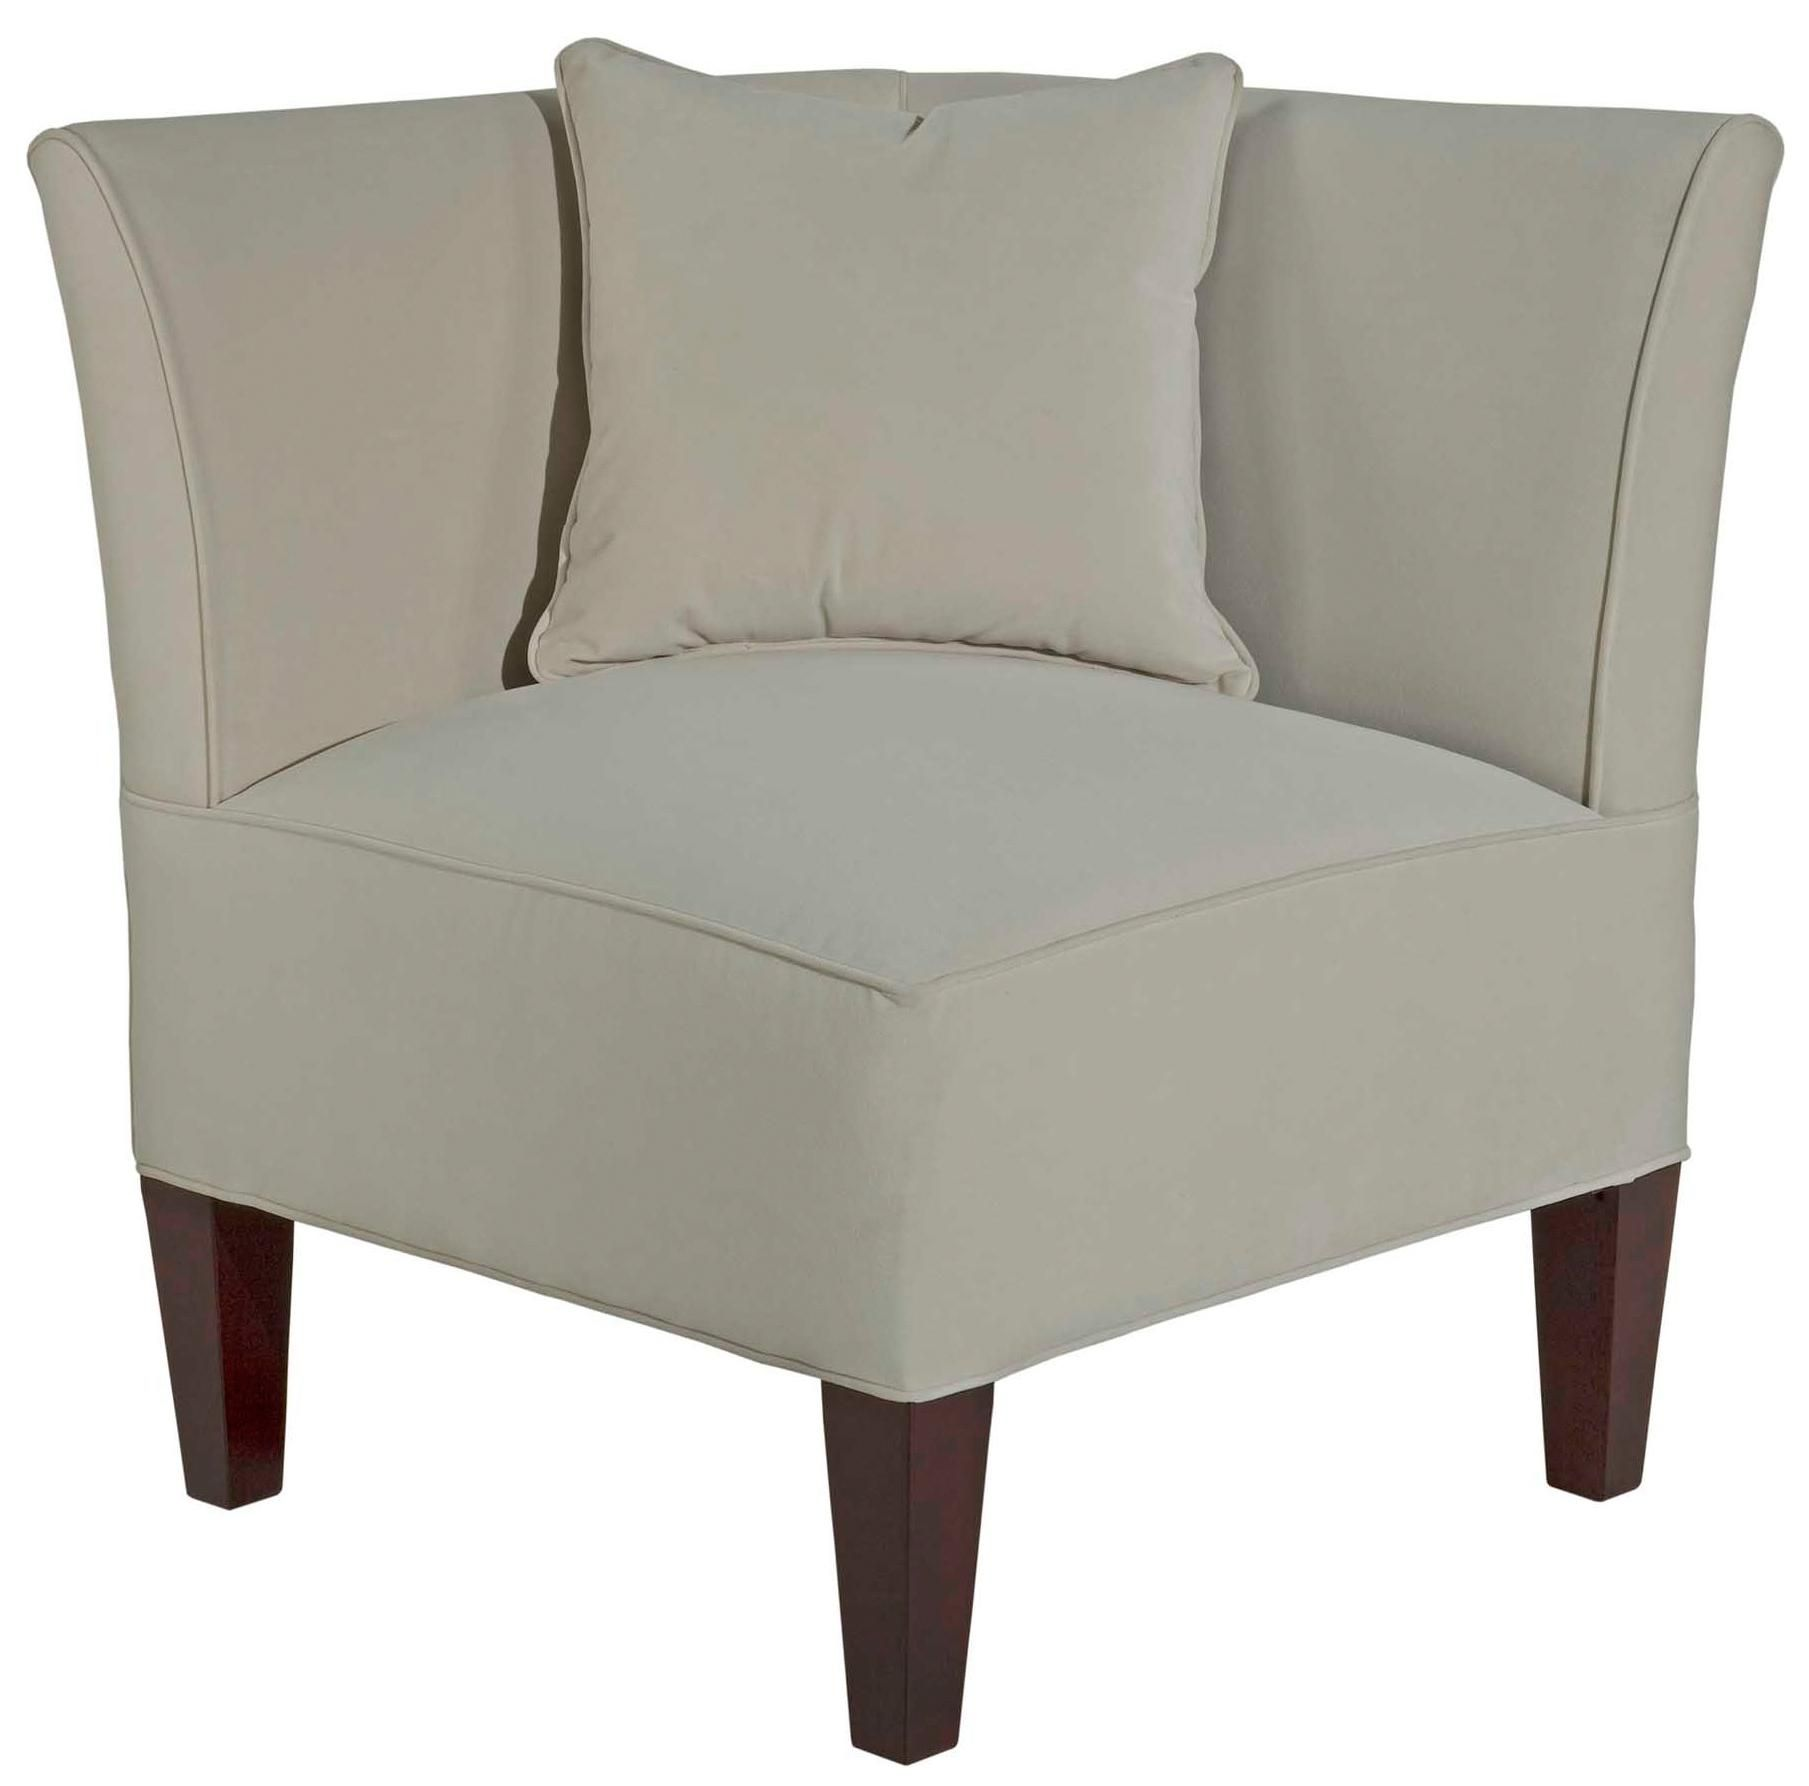 Caitlyn Left Facing Corner Chair with Track Arms by Broyhill